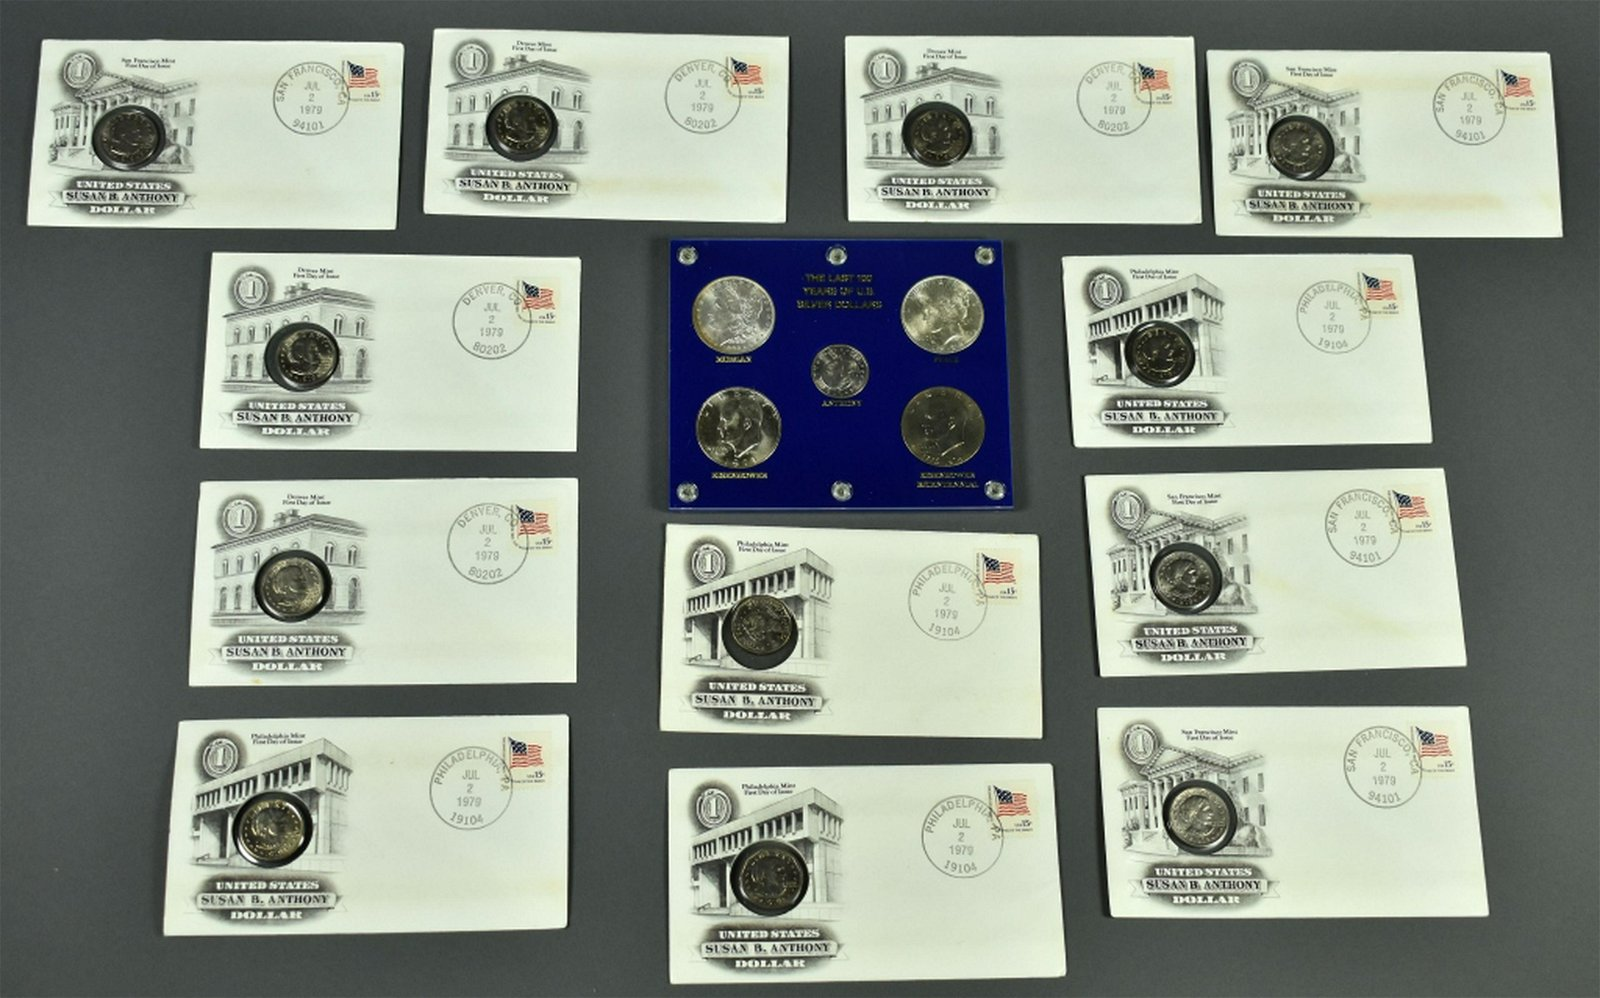 Set of Uncirculated Dollars -Last 100 Years